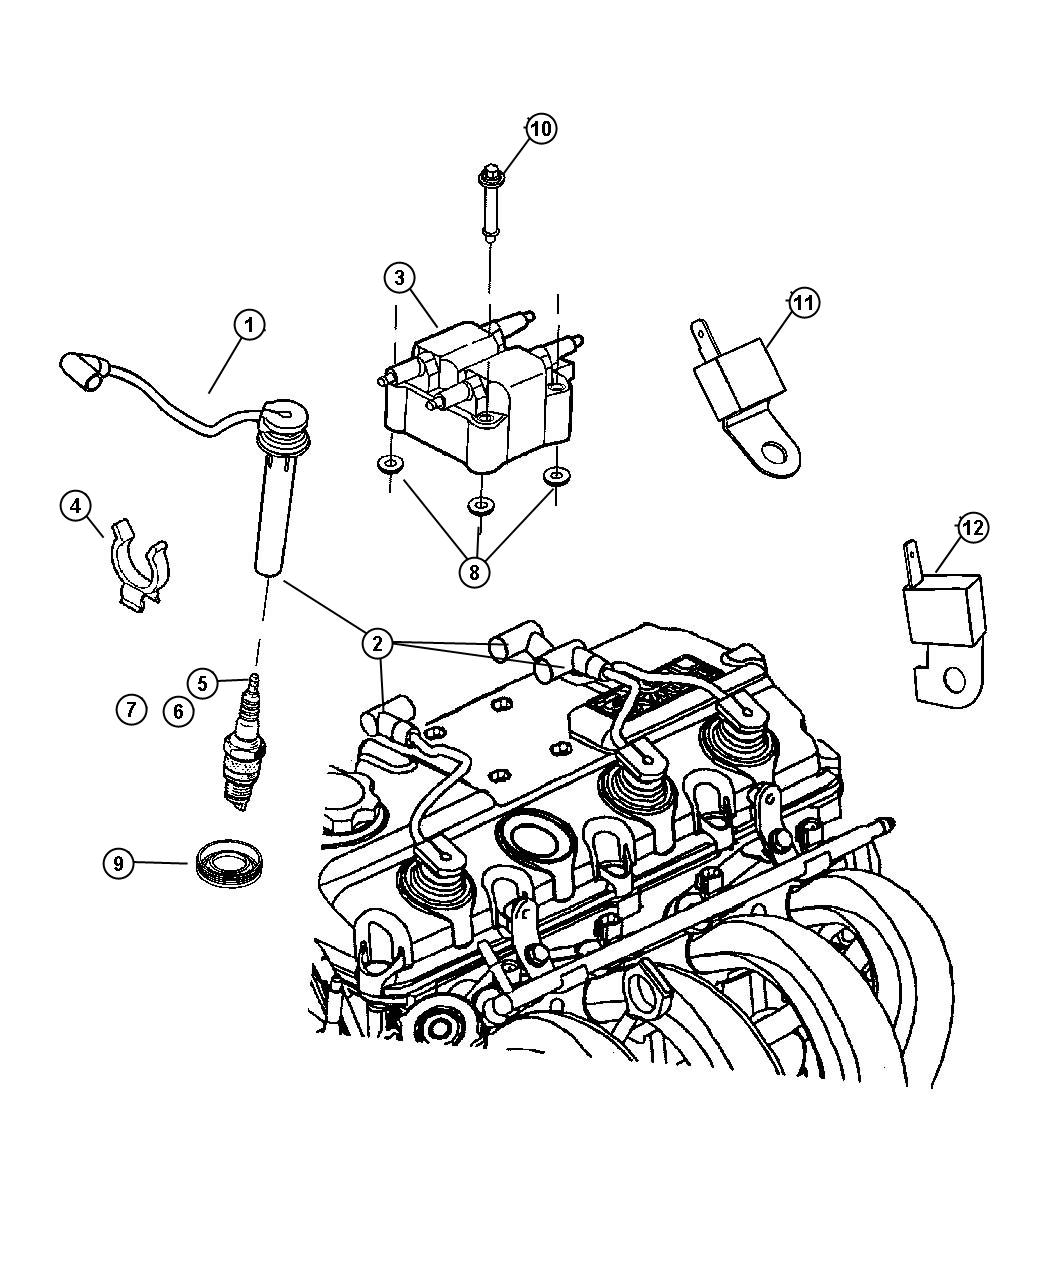 Pt Cruiser 2 4l Engine Parts Diagram Wiring Diagrams 2006 Free 2004 Chrysler